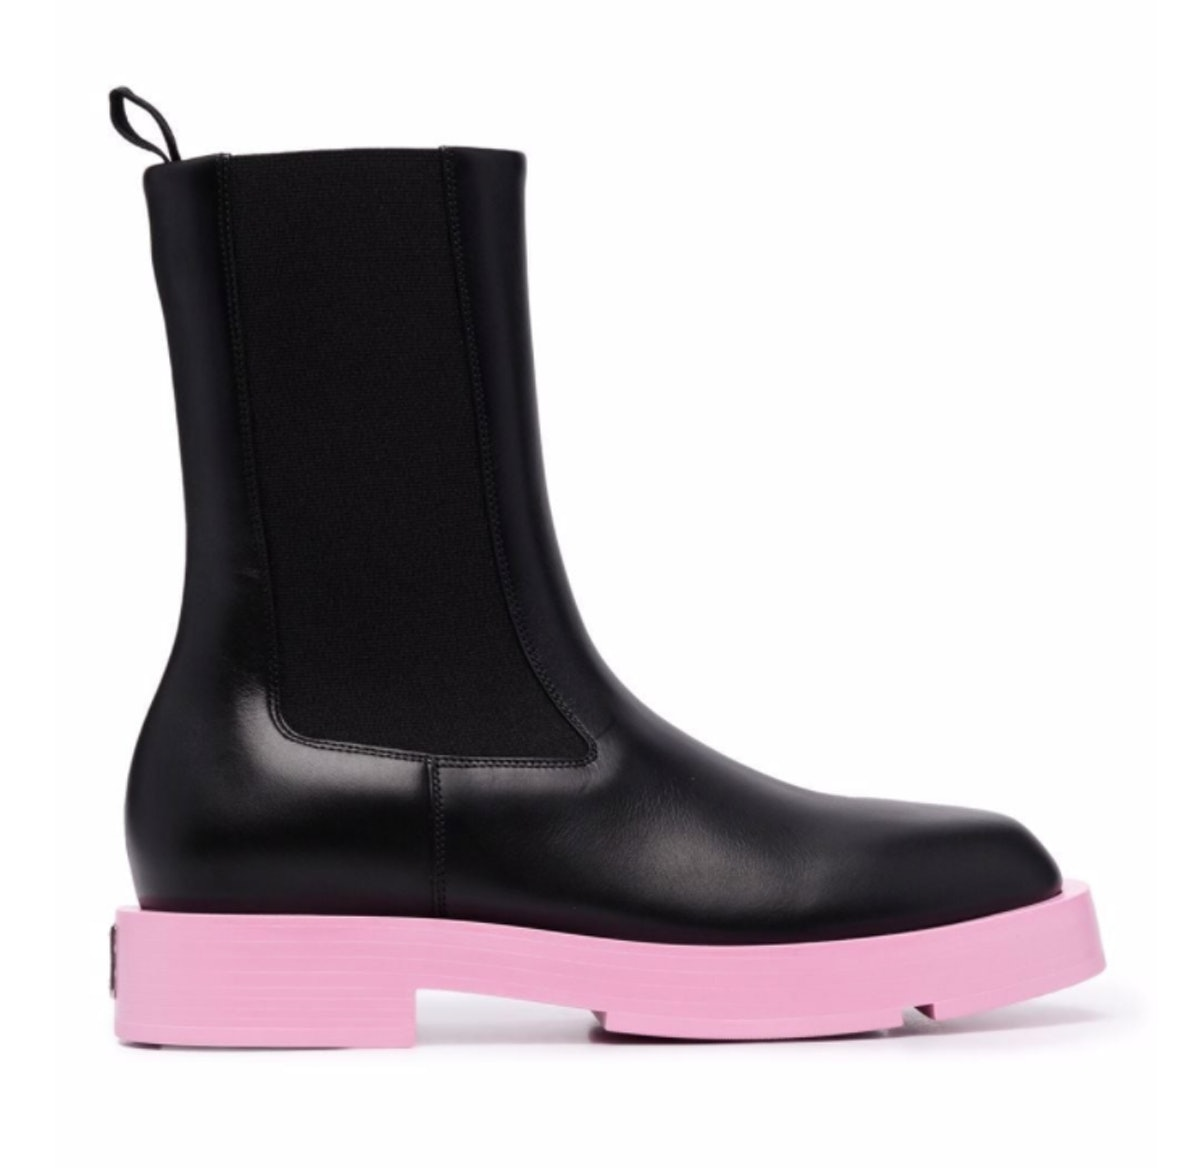 Givenchy's Color Block Leather Chelsea Boots in pink.